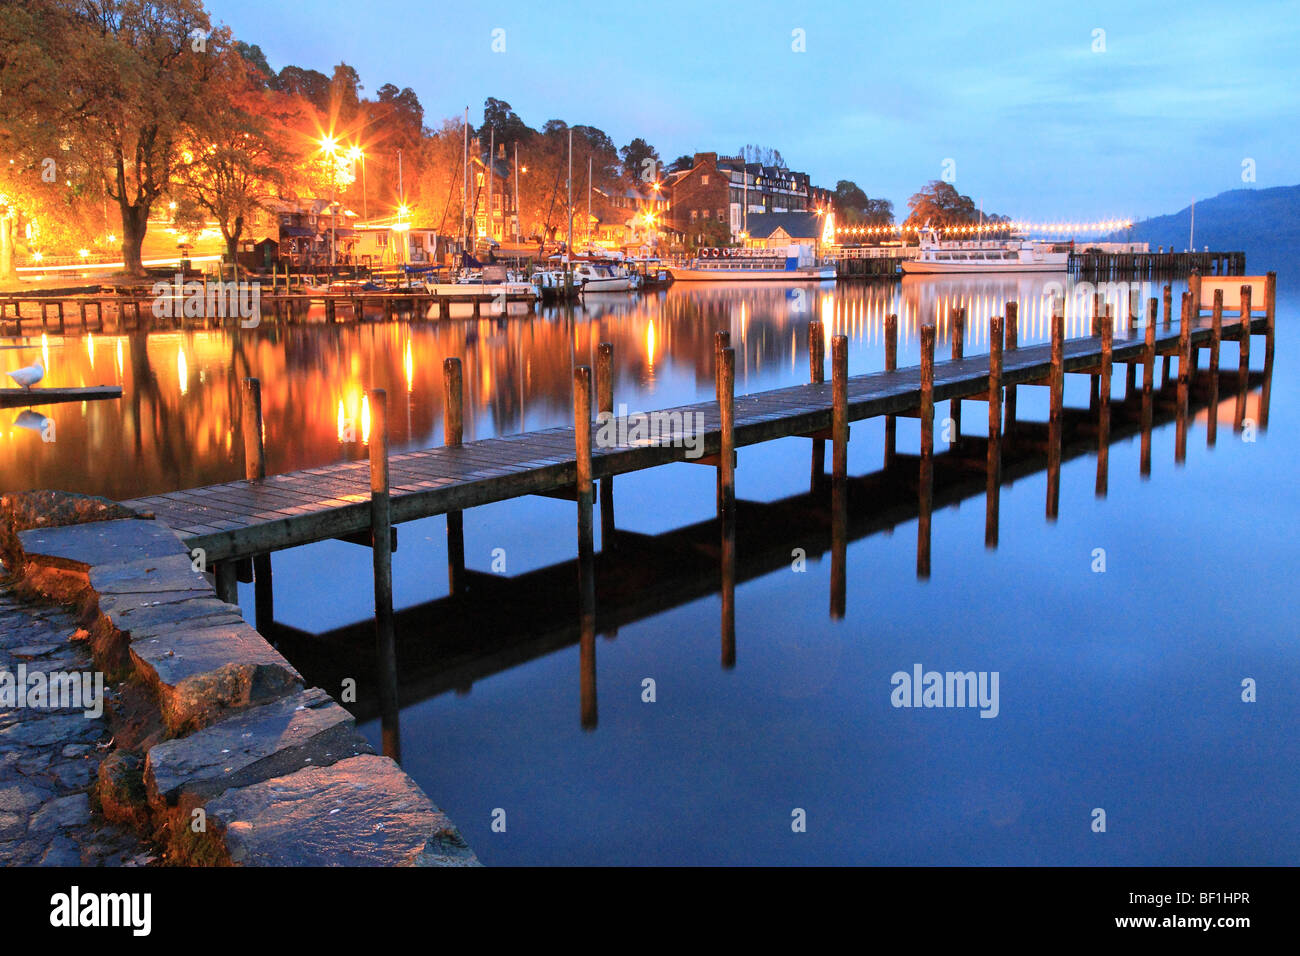 Pier in Ambleside Windermere Lake in Ambleside The Lake District Cumbria England - Stock Image